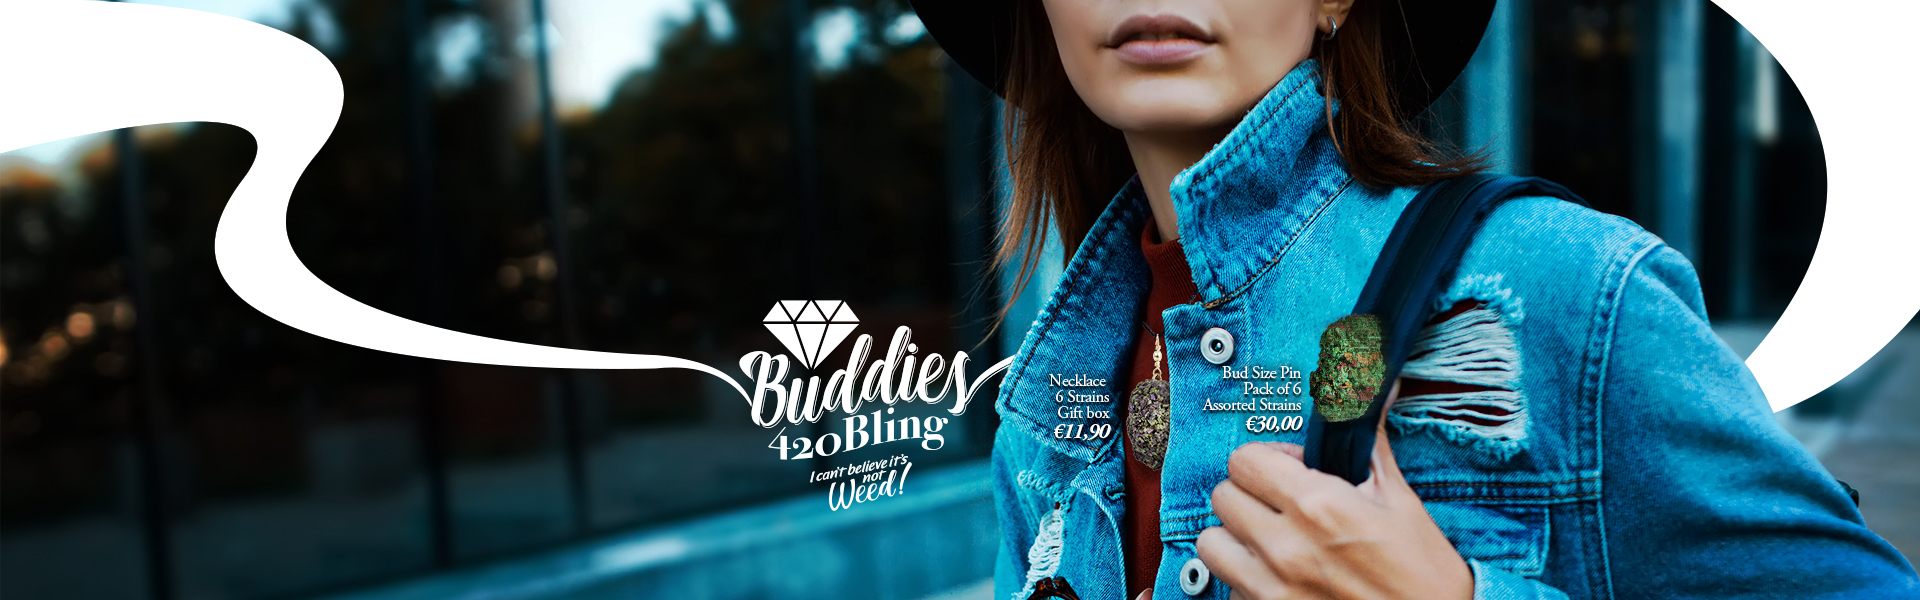 Buddies-420-Bling-EN